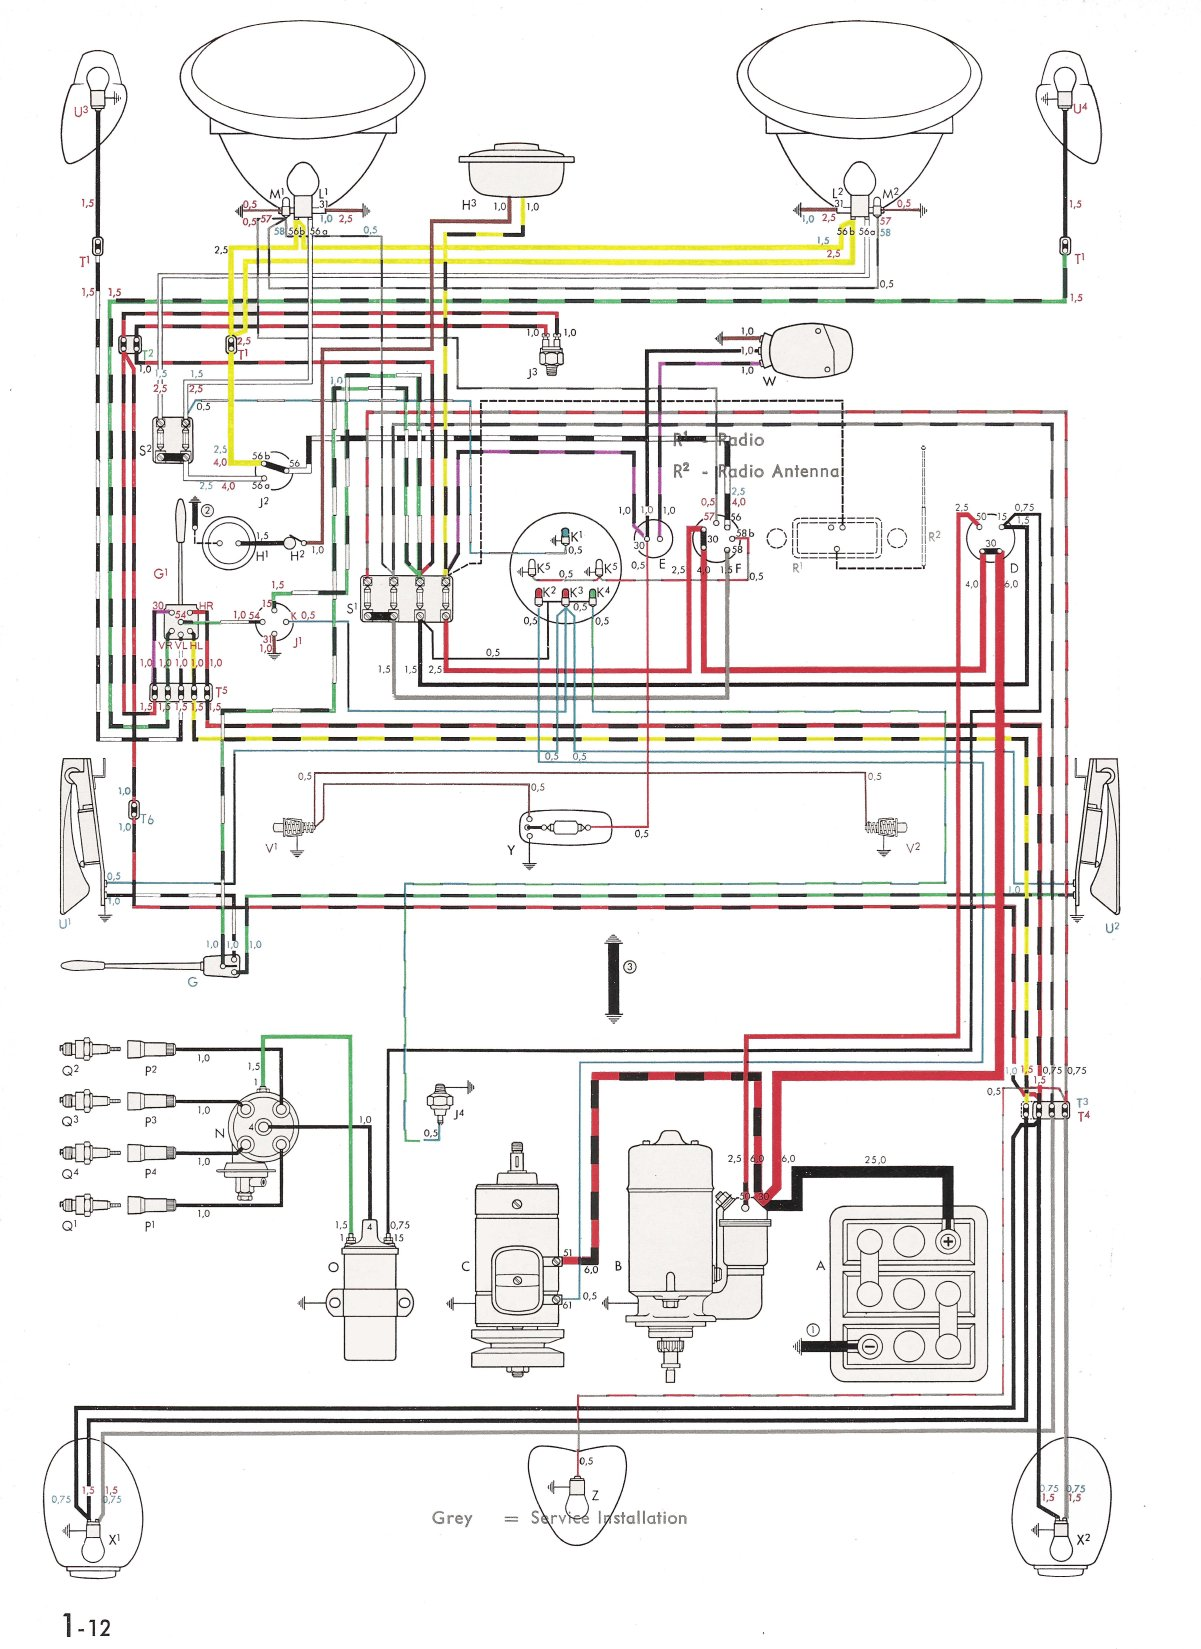 thesamba com type 1 wiring diagrams rh thesamba com vw beetle wiring diagram 1971 wiring diagram vw beetle 1973